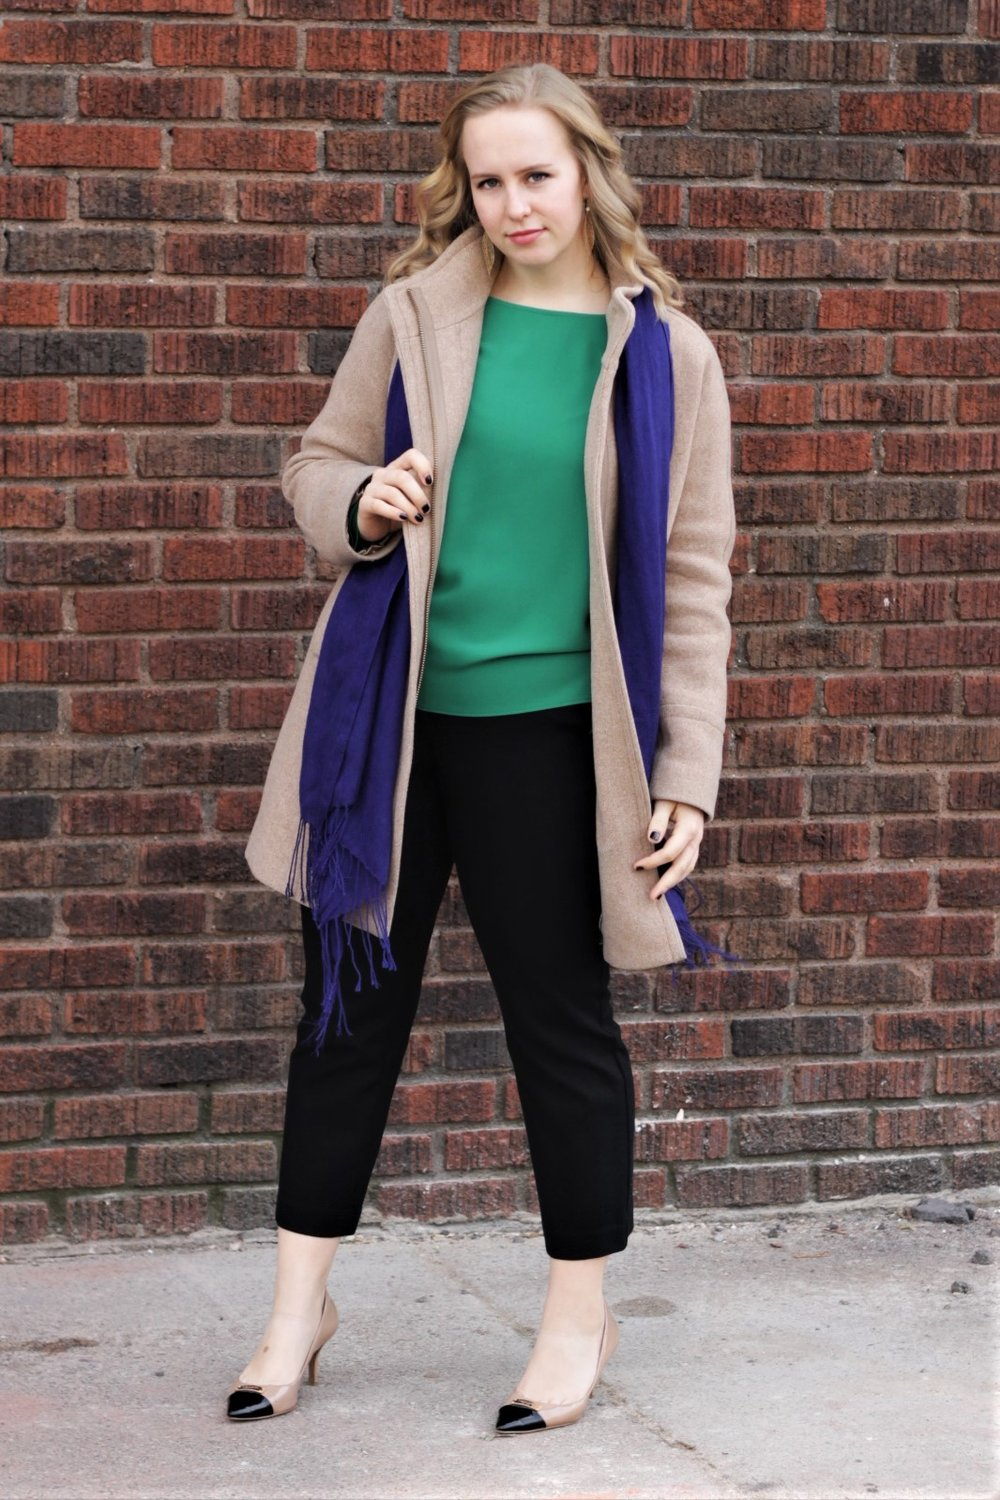 Ready for Winter | Camel Jacket & Kelly Green | Work & What She Wore